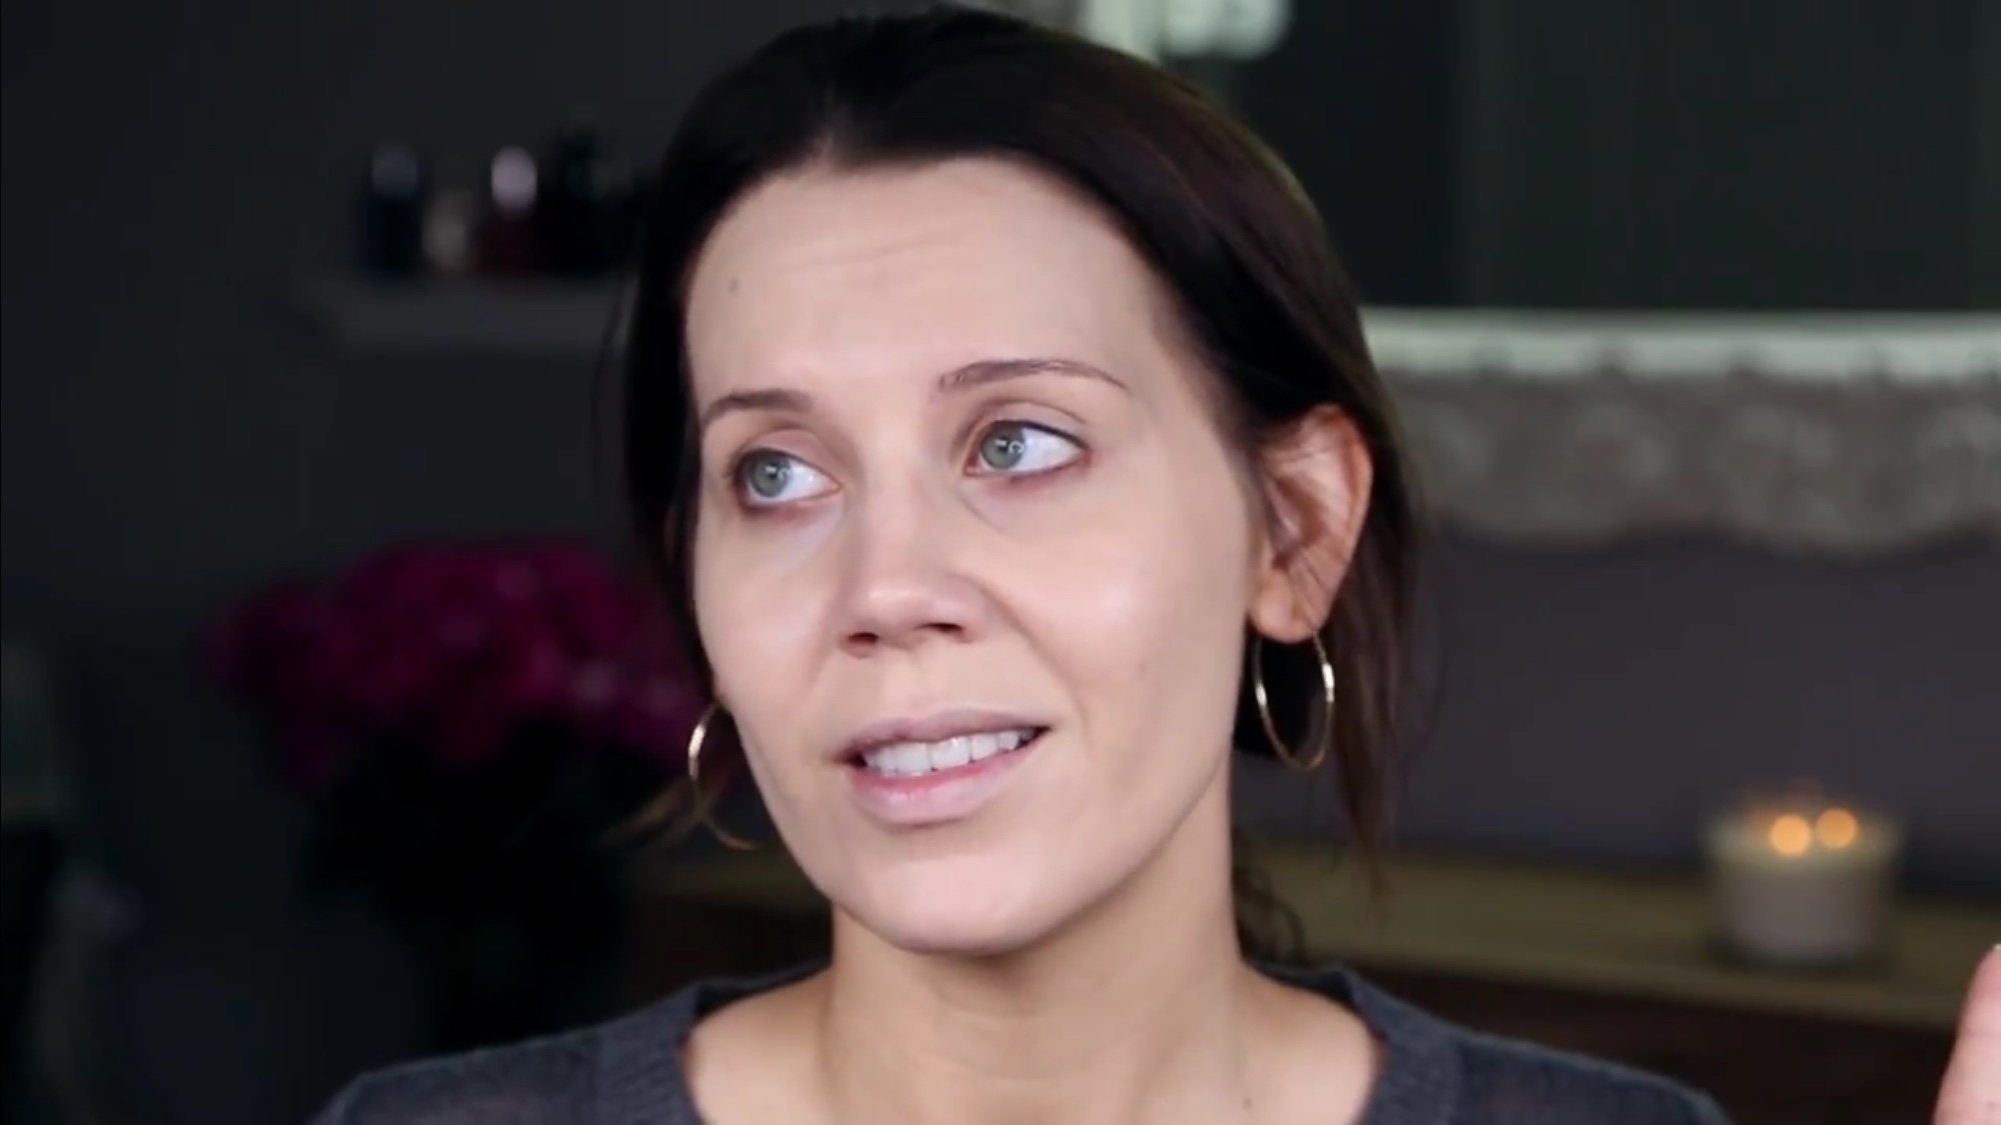 Re: glamlifeguru/Tati - Part 4